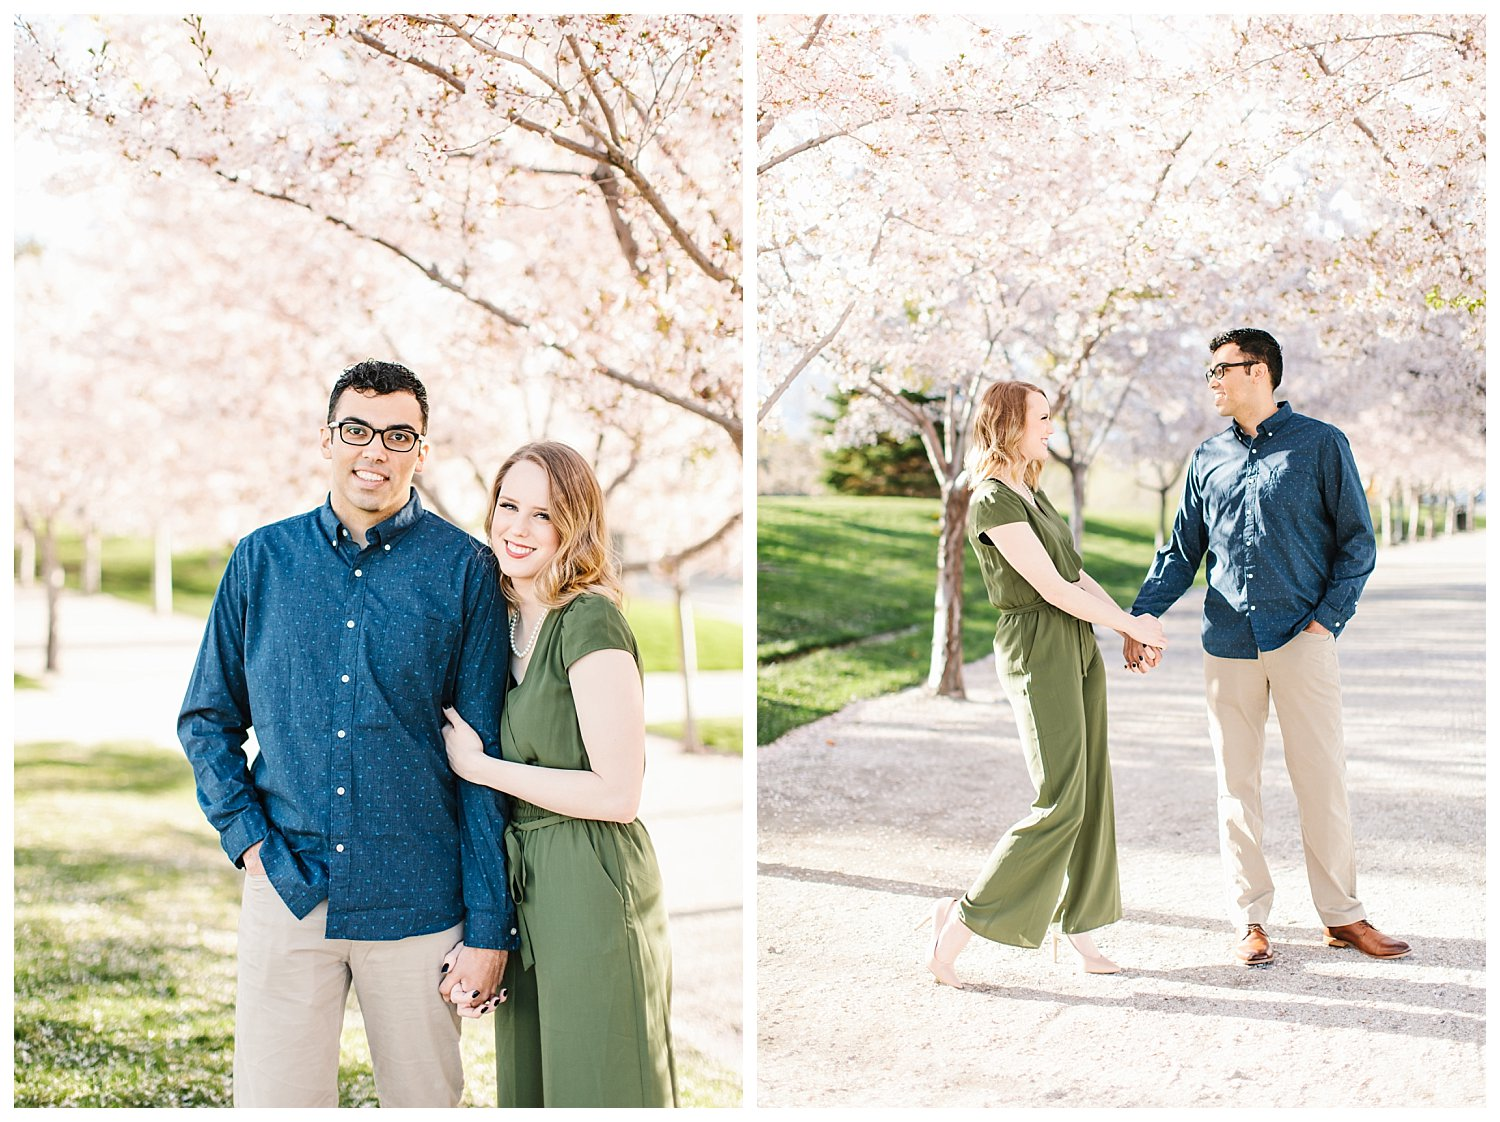 Spring Blossoms Engagement Session 10